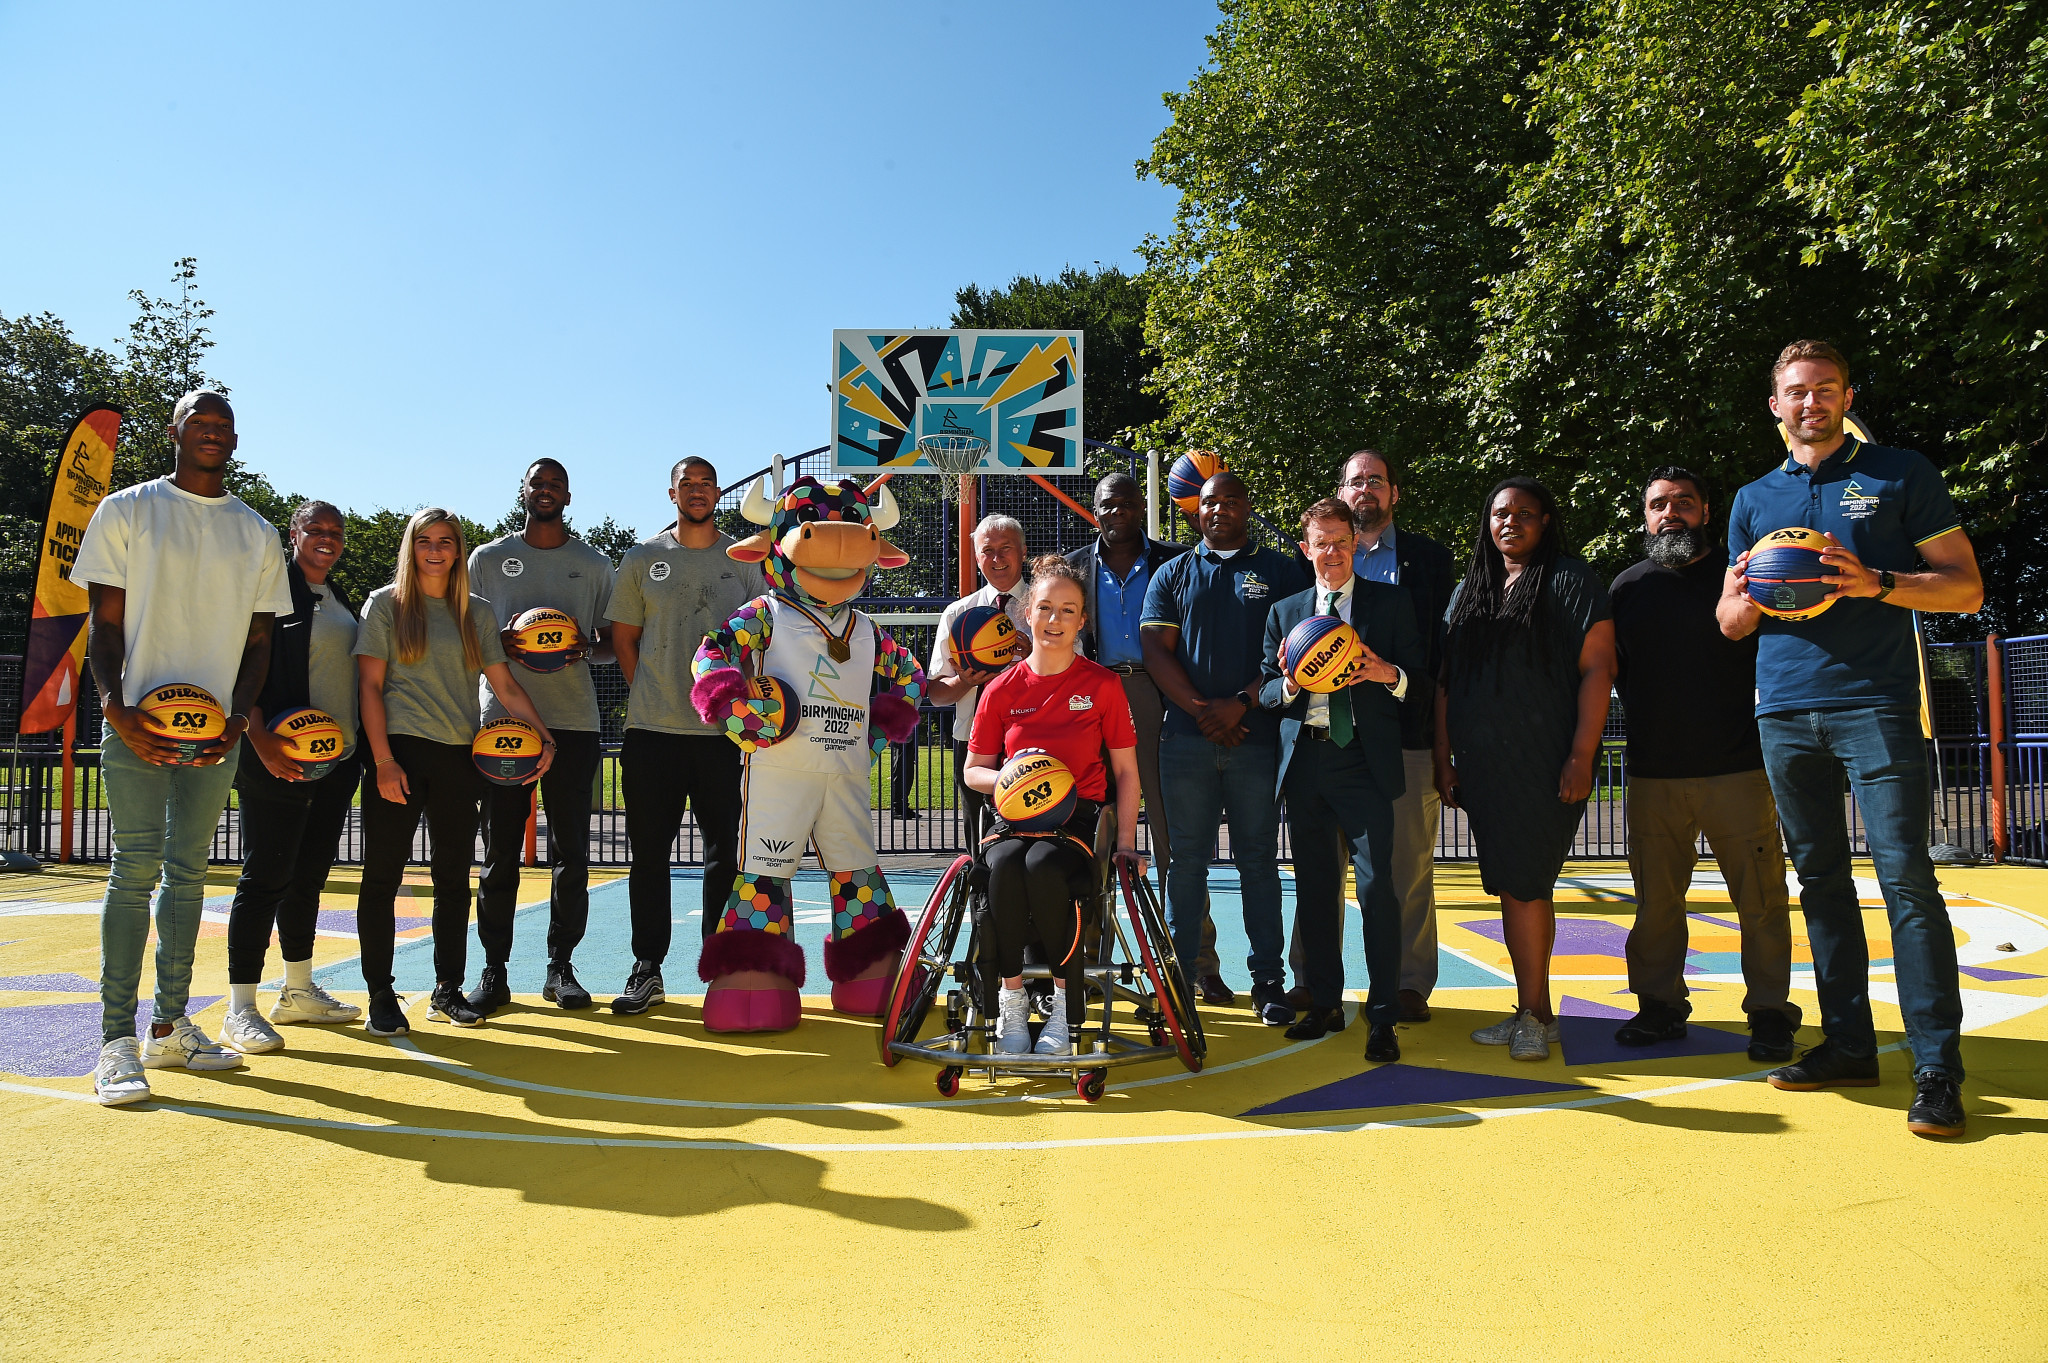 Birmingham 2022 has transformed a basketball court in Summerfield Park ©Getty Images